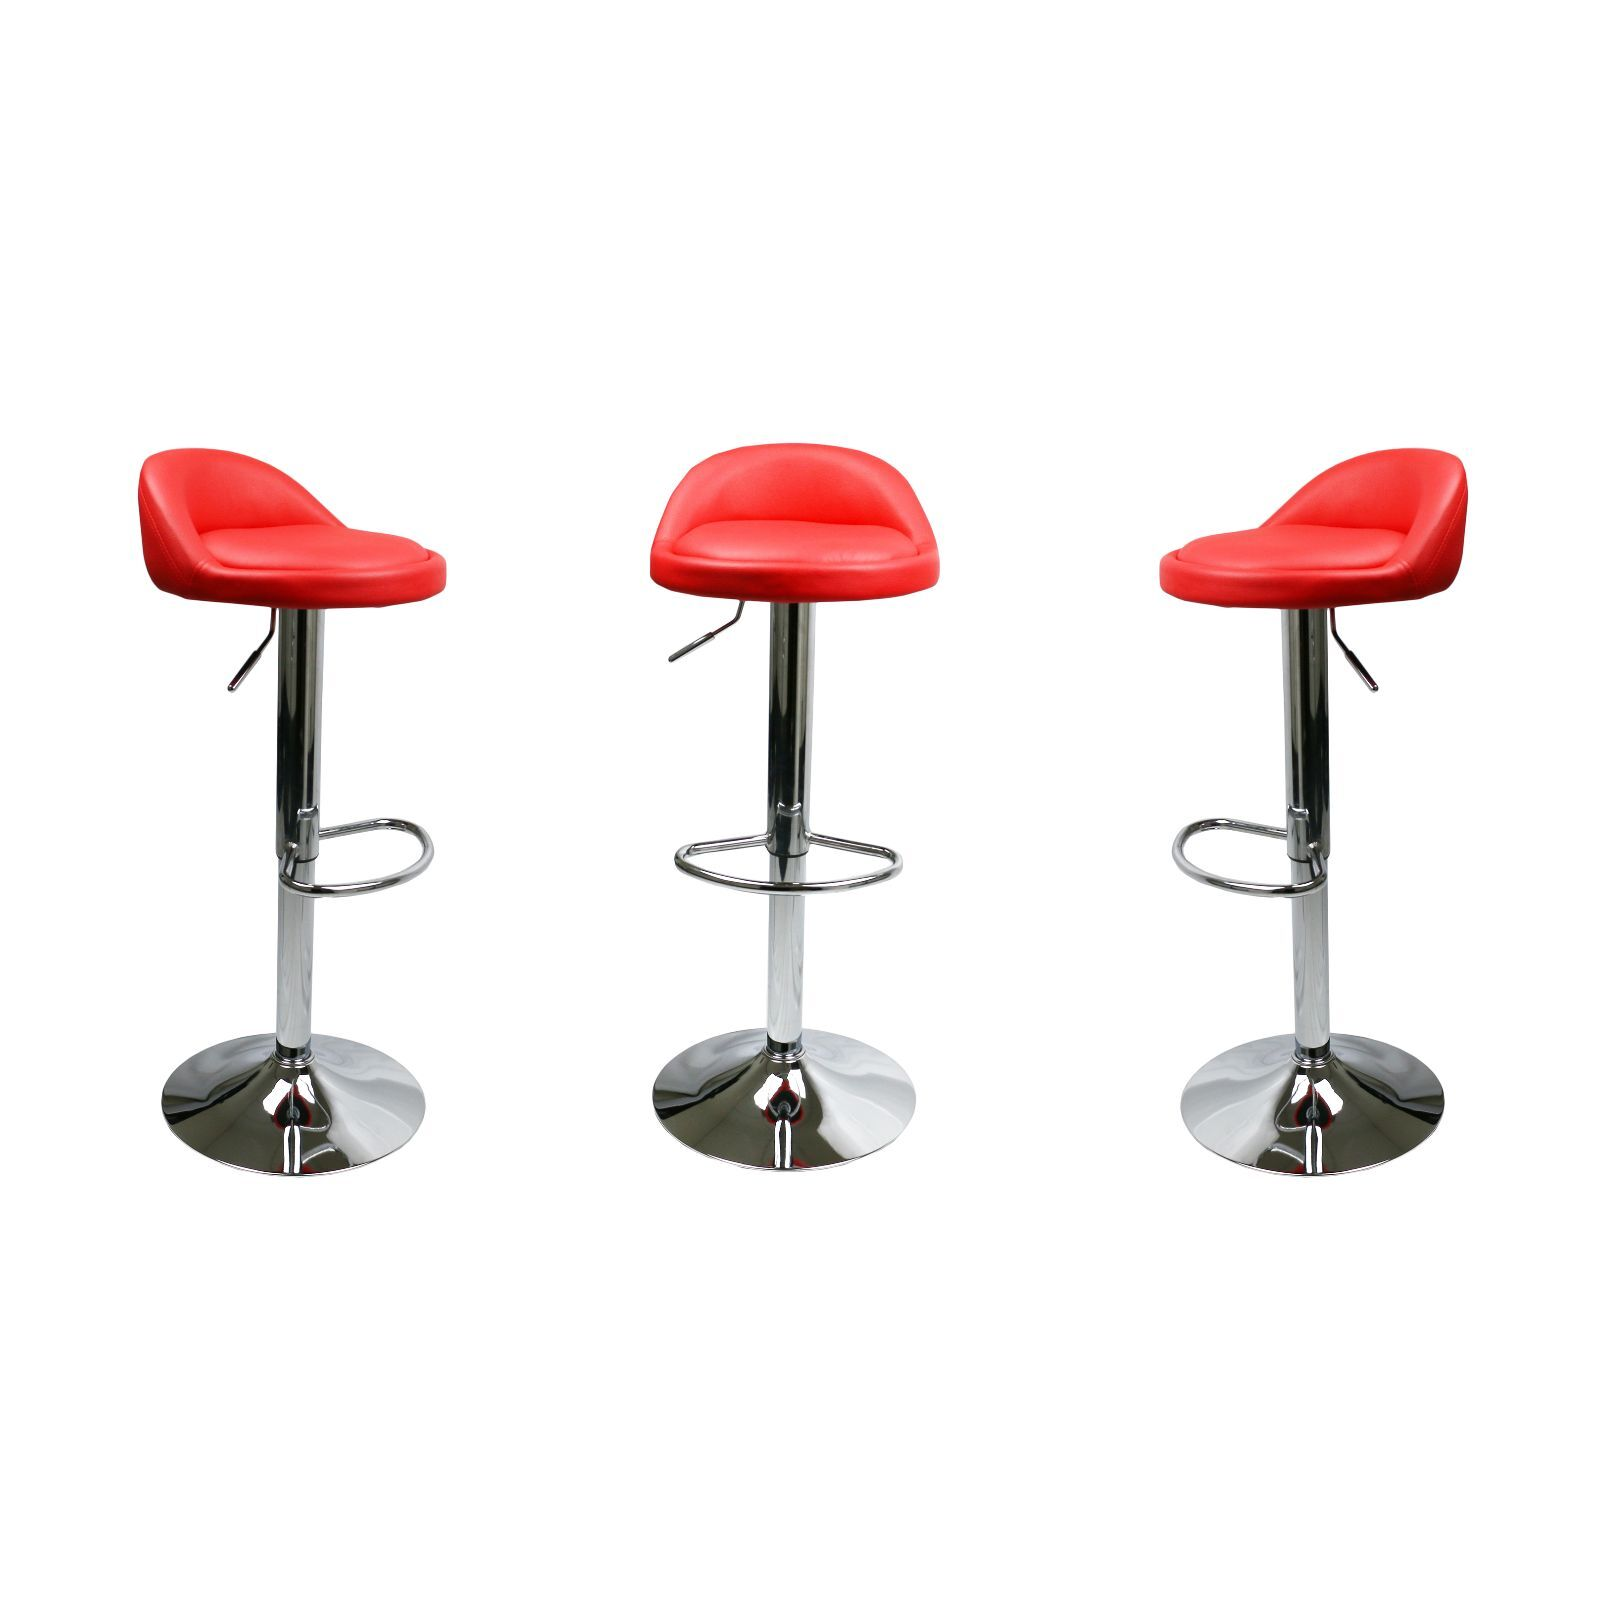 Swell Details About Set Of 2 Red Leather Bar Stools Swivel Dinning Counter Adjustable Height Chair Unemploymentrelief Wooden Chair Designs For Living Room Unemploymentrelieforg